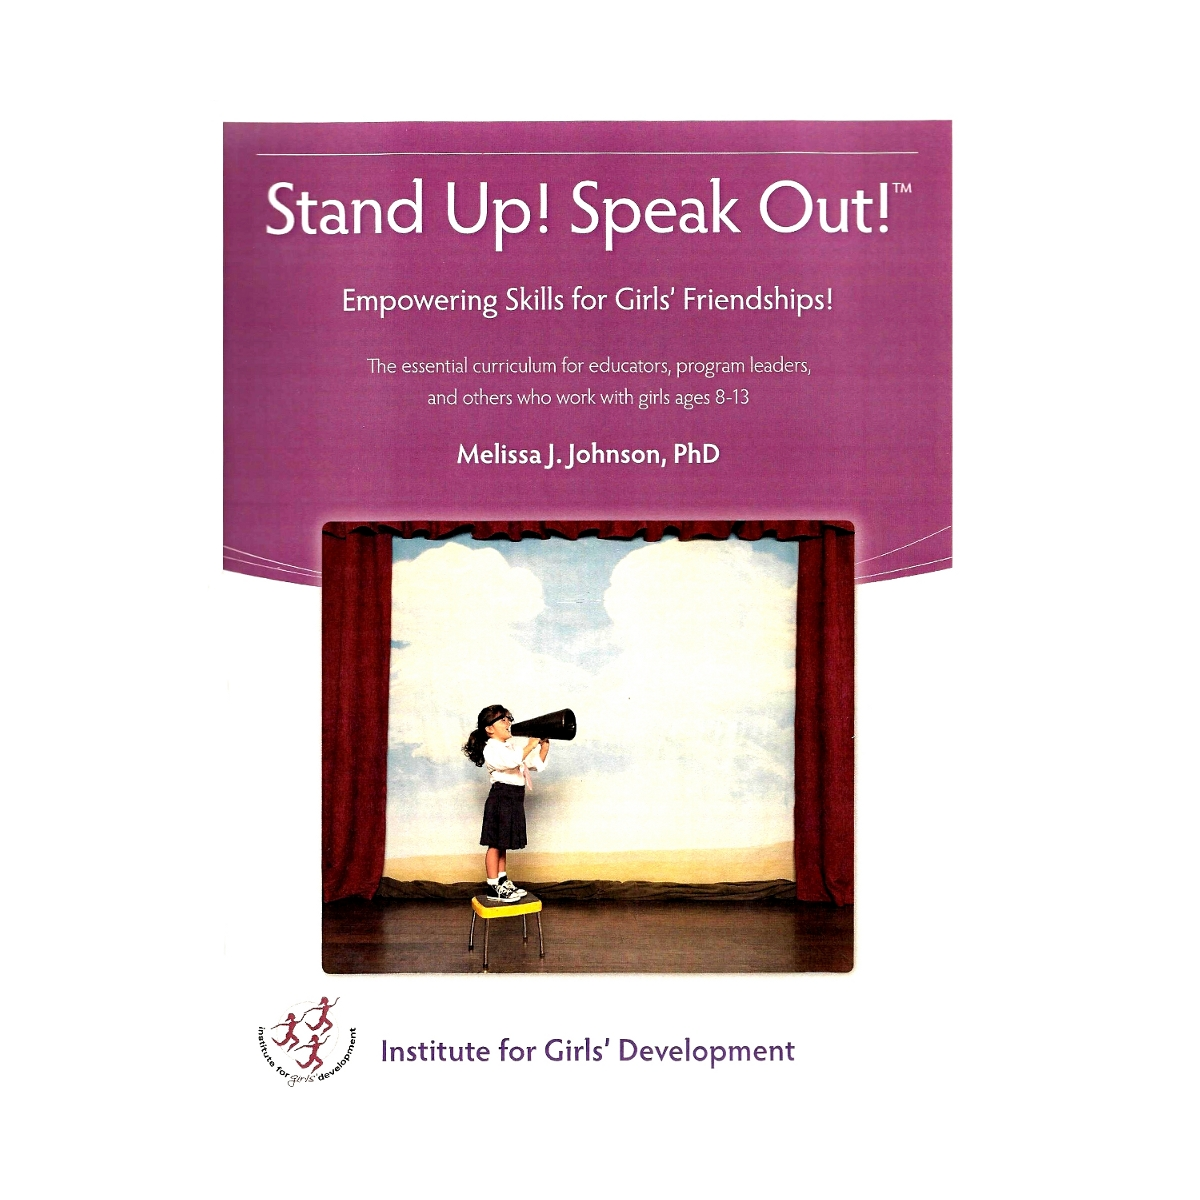 Stand Up! Speak Out! Curriculum Training – July 20-21, 2017